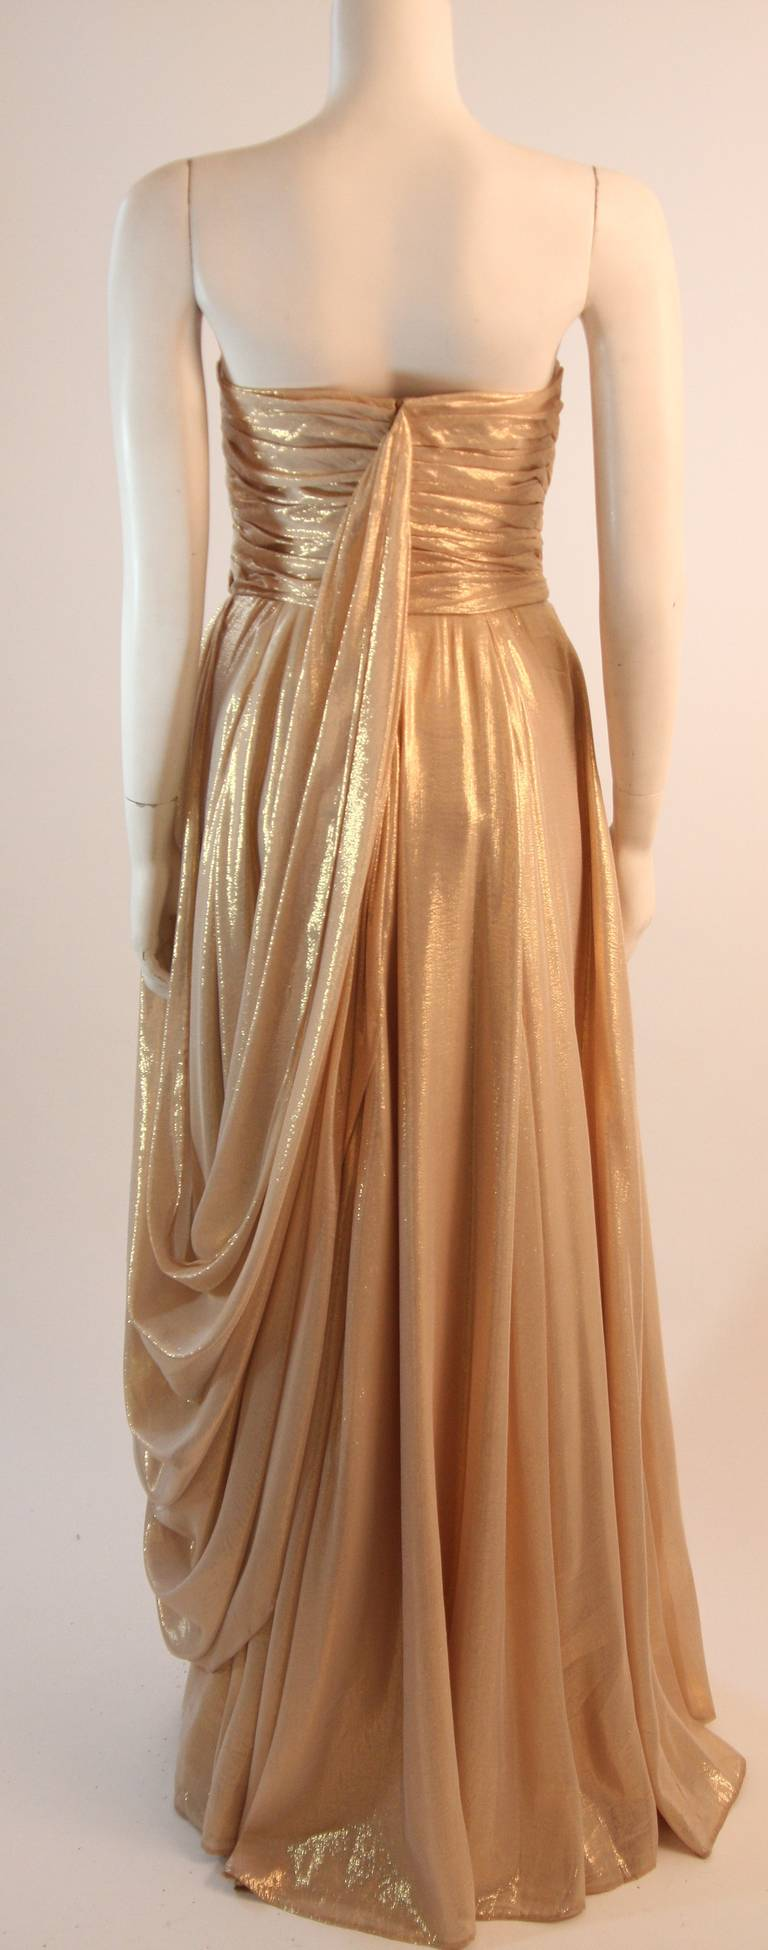 Elizabeth Mason Couture Custom Draped Strapless Gold Lame Gown For Sale 2